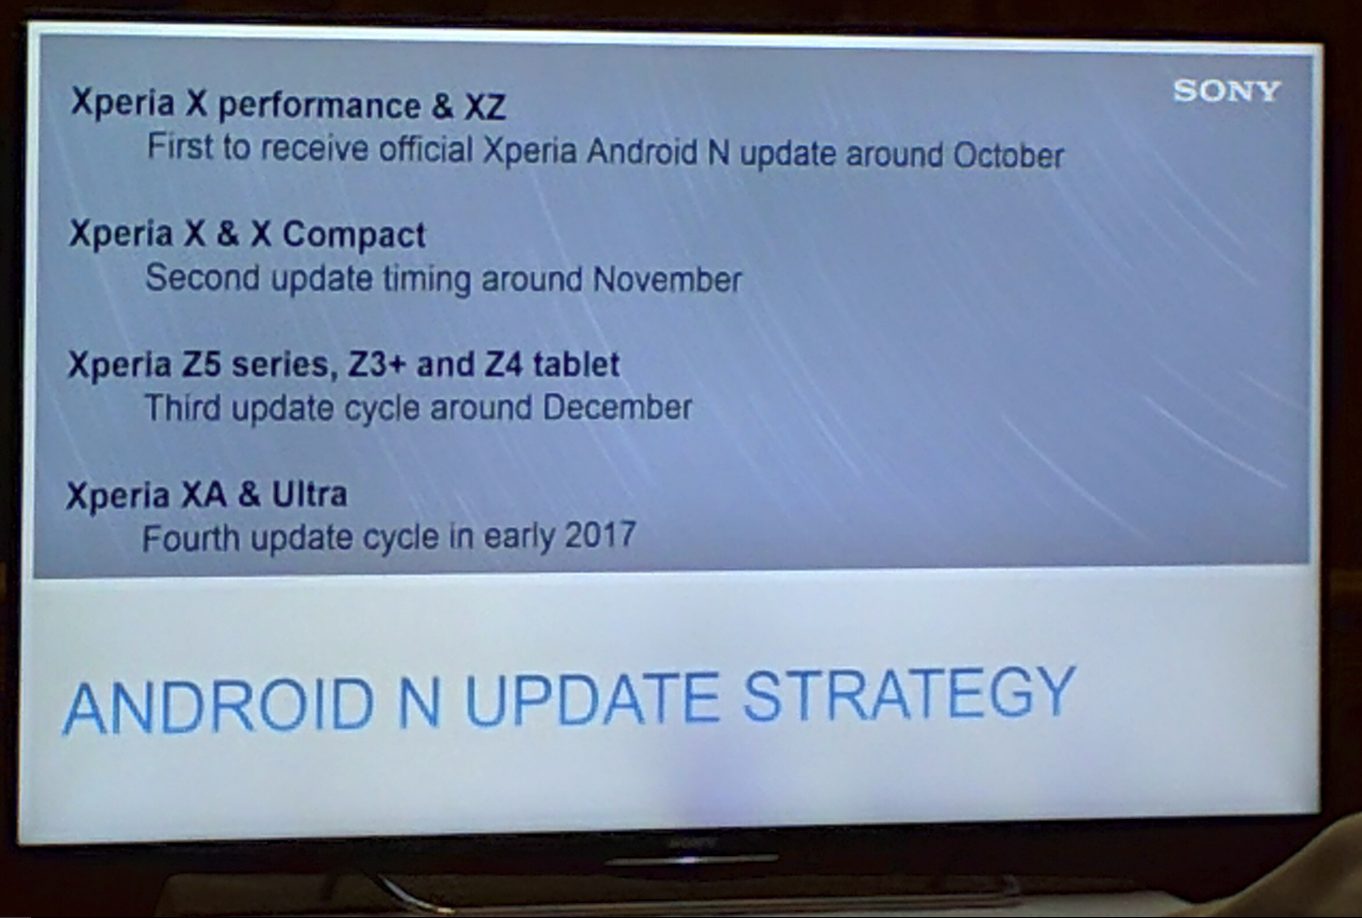 Sony Xperia Nougat Update Roadmap